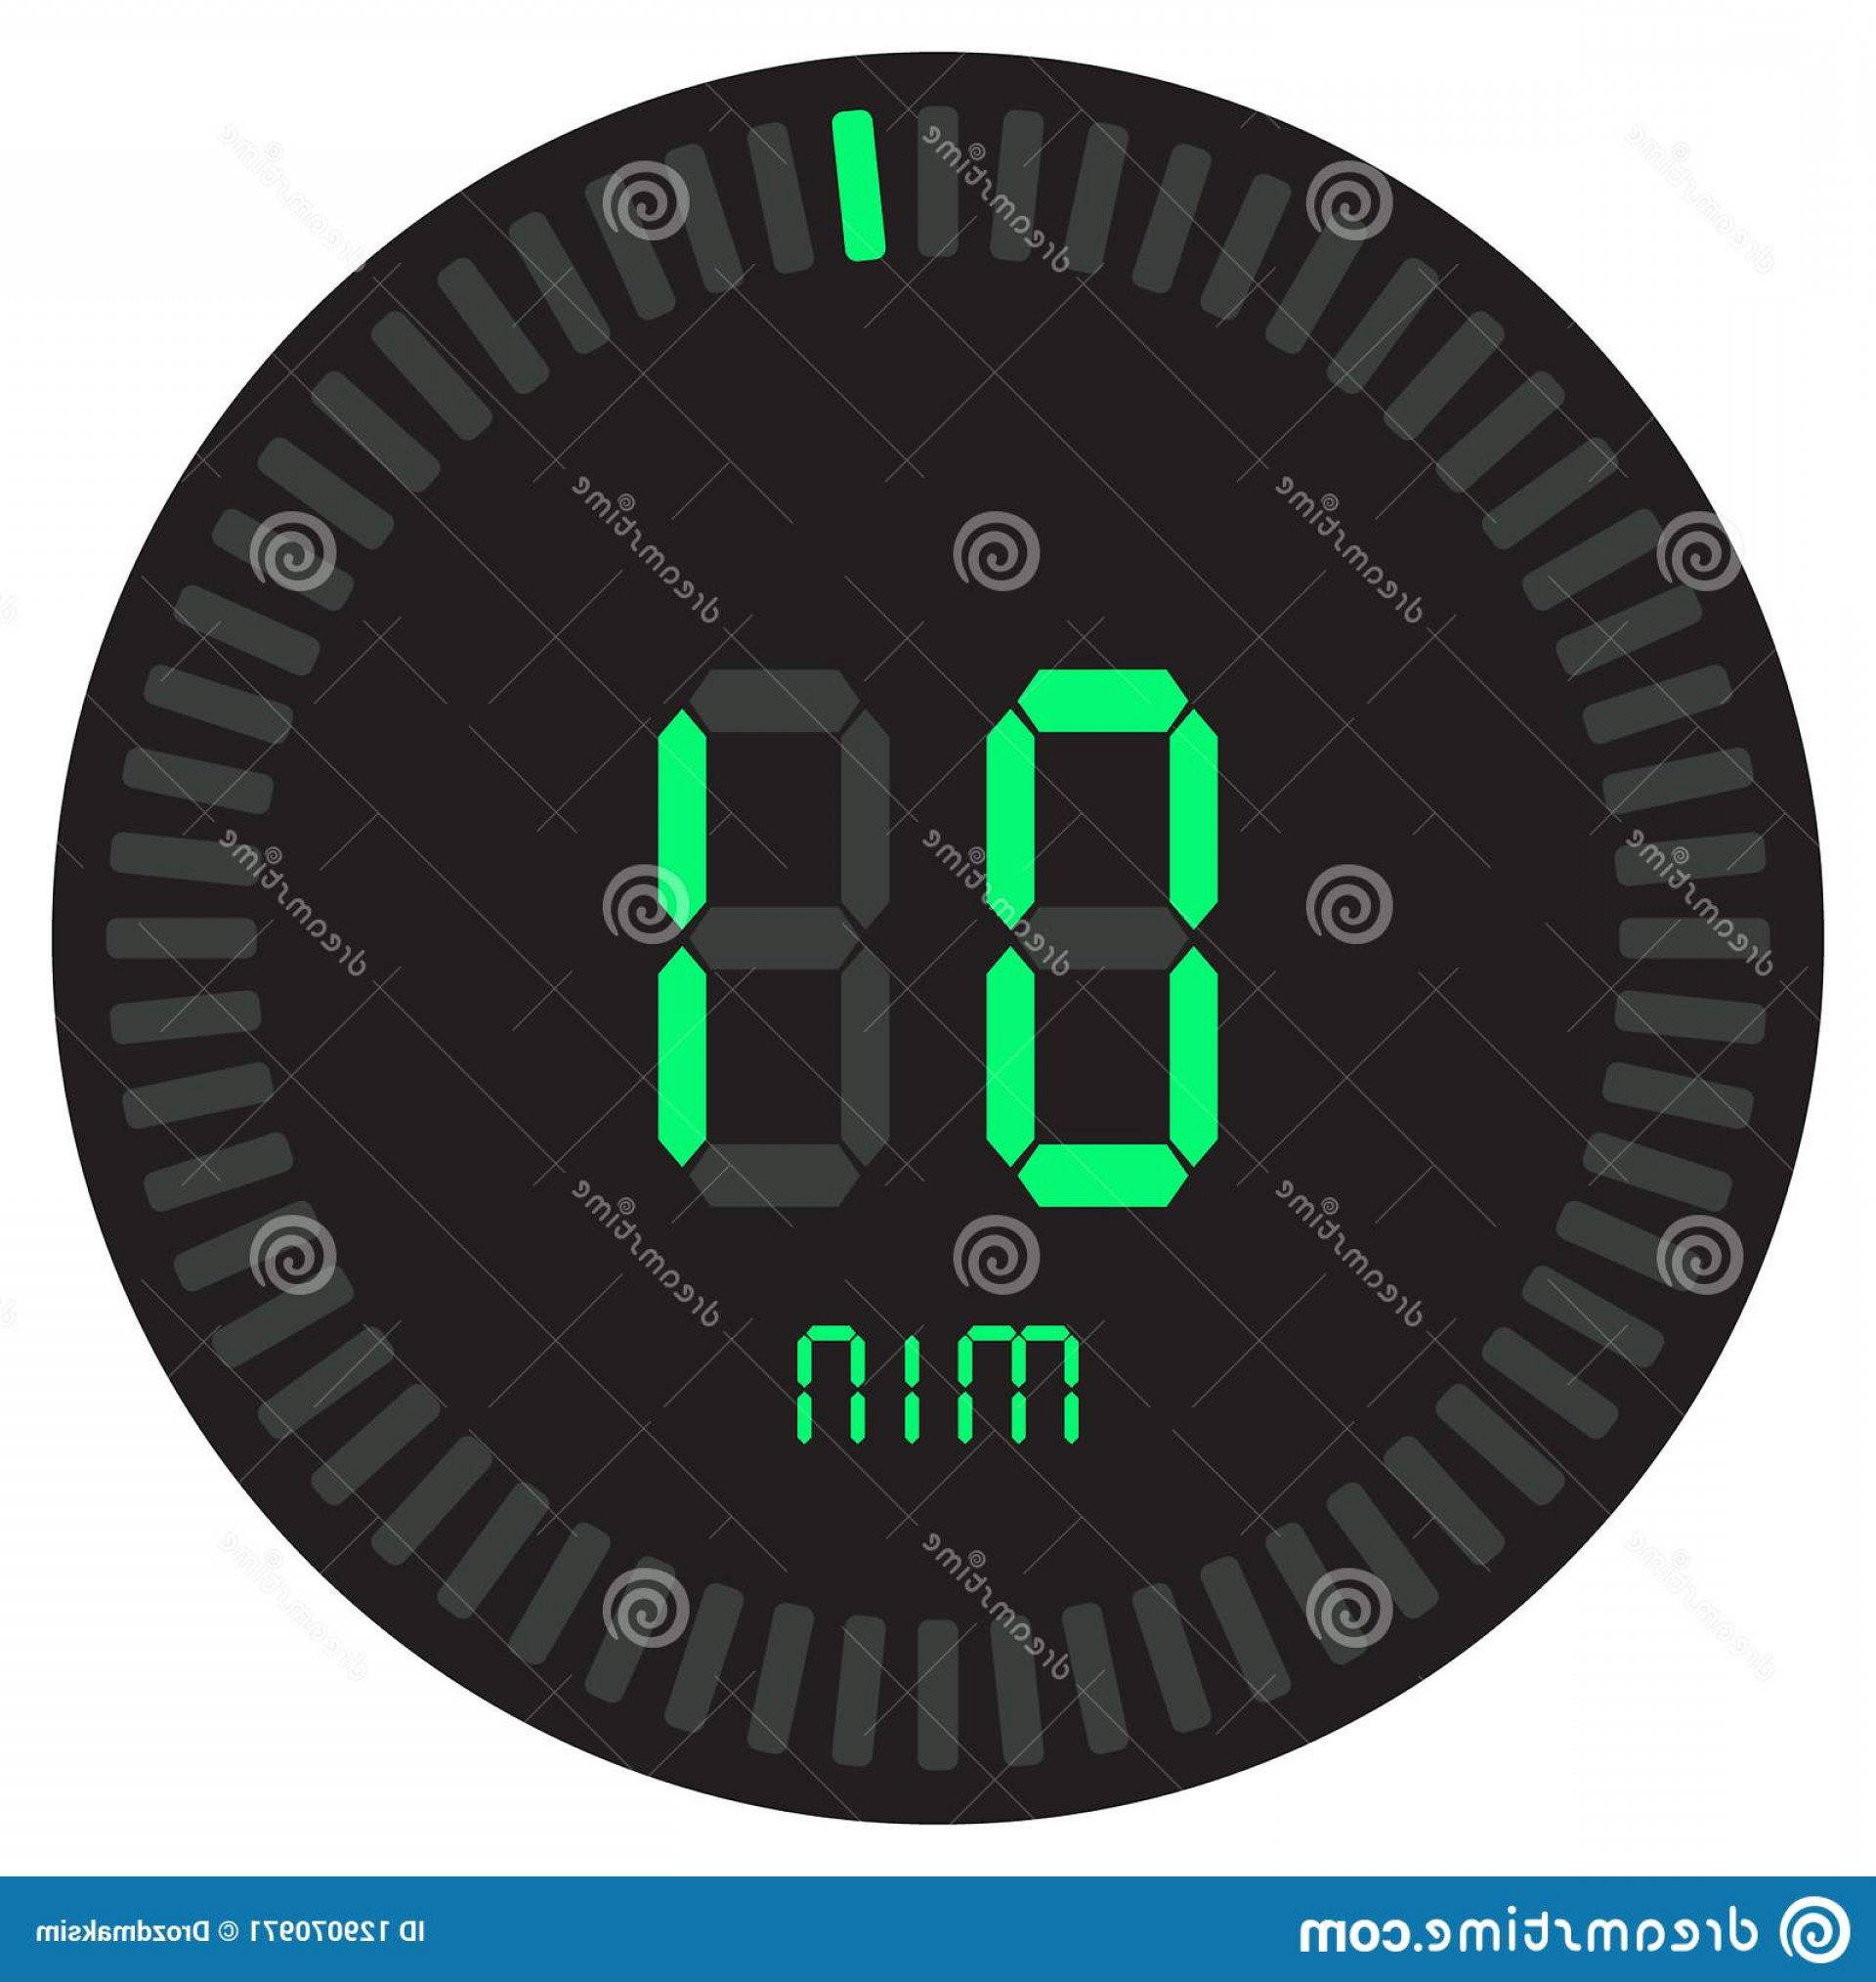 Stop Watch Vector Ai File: Digital Timer Minute Electronic Stopwatch Gradient Dial Starting Vector Icon Clock Watch Countdown Green Symbol Image